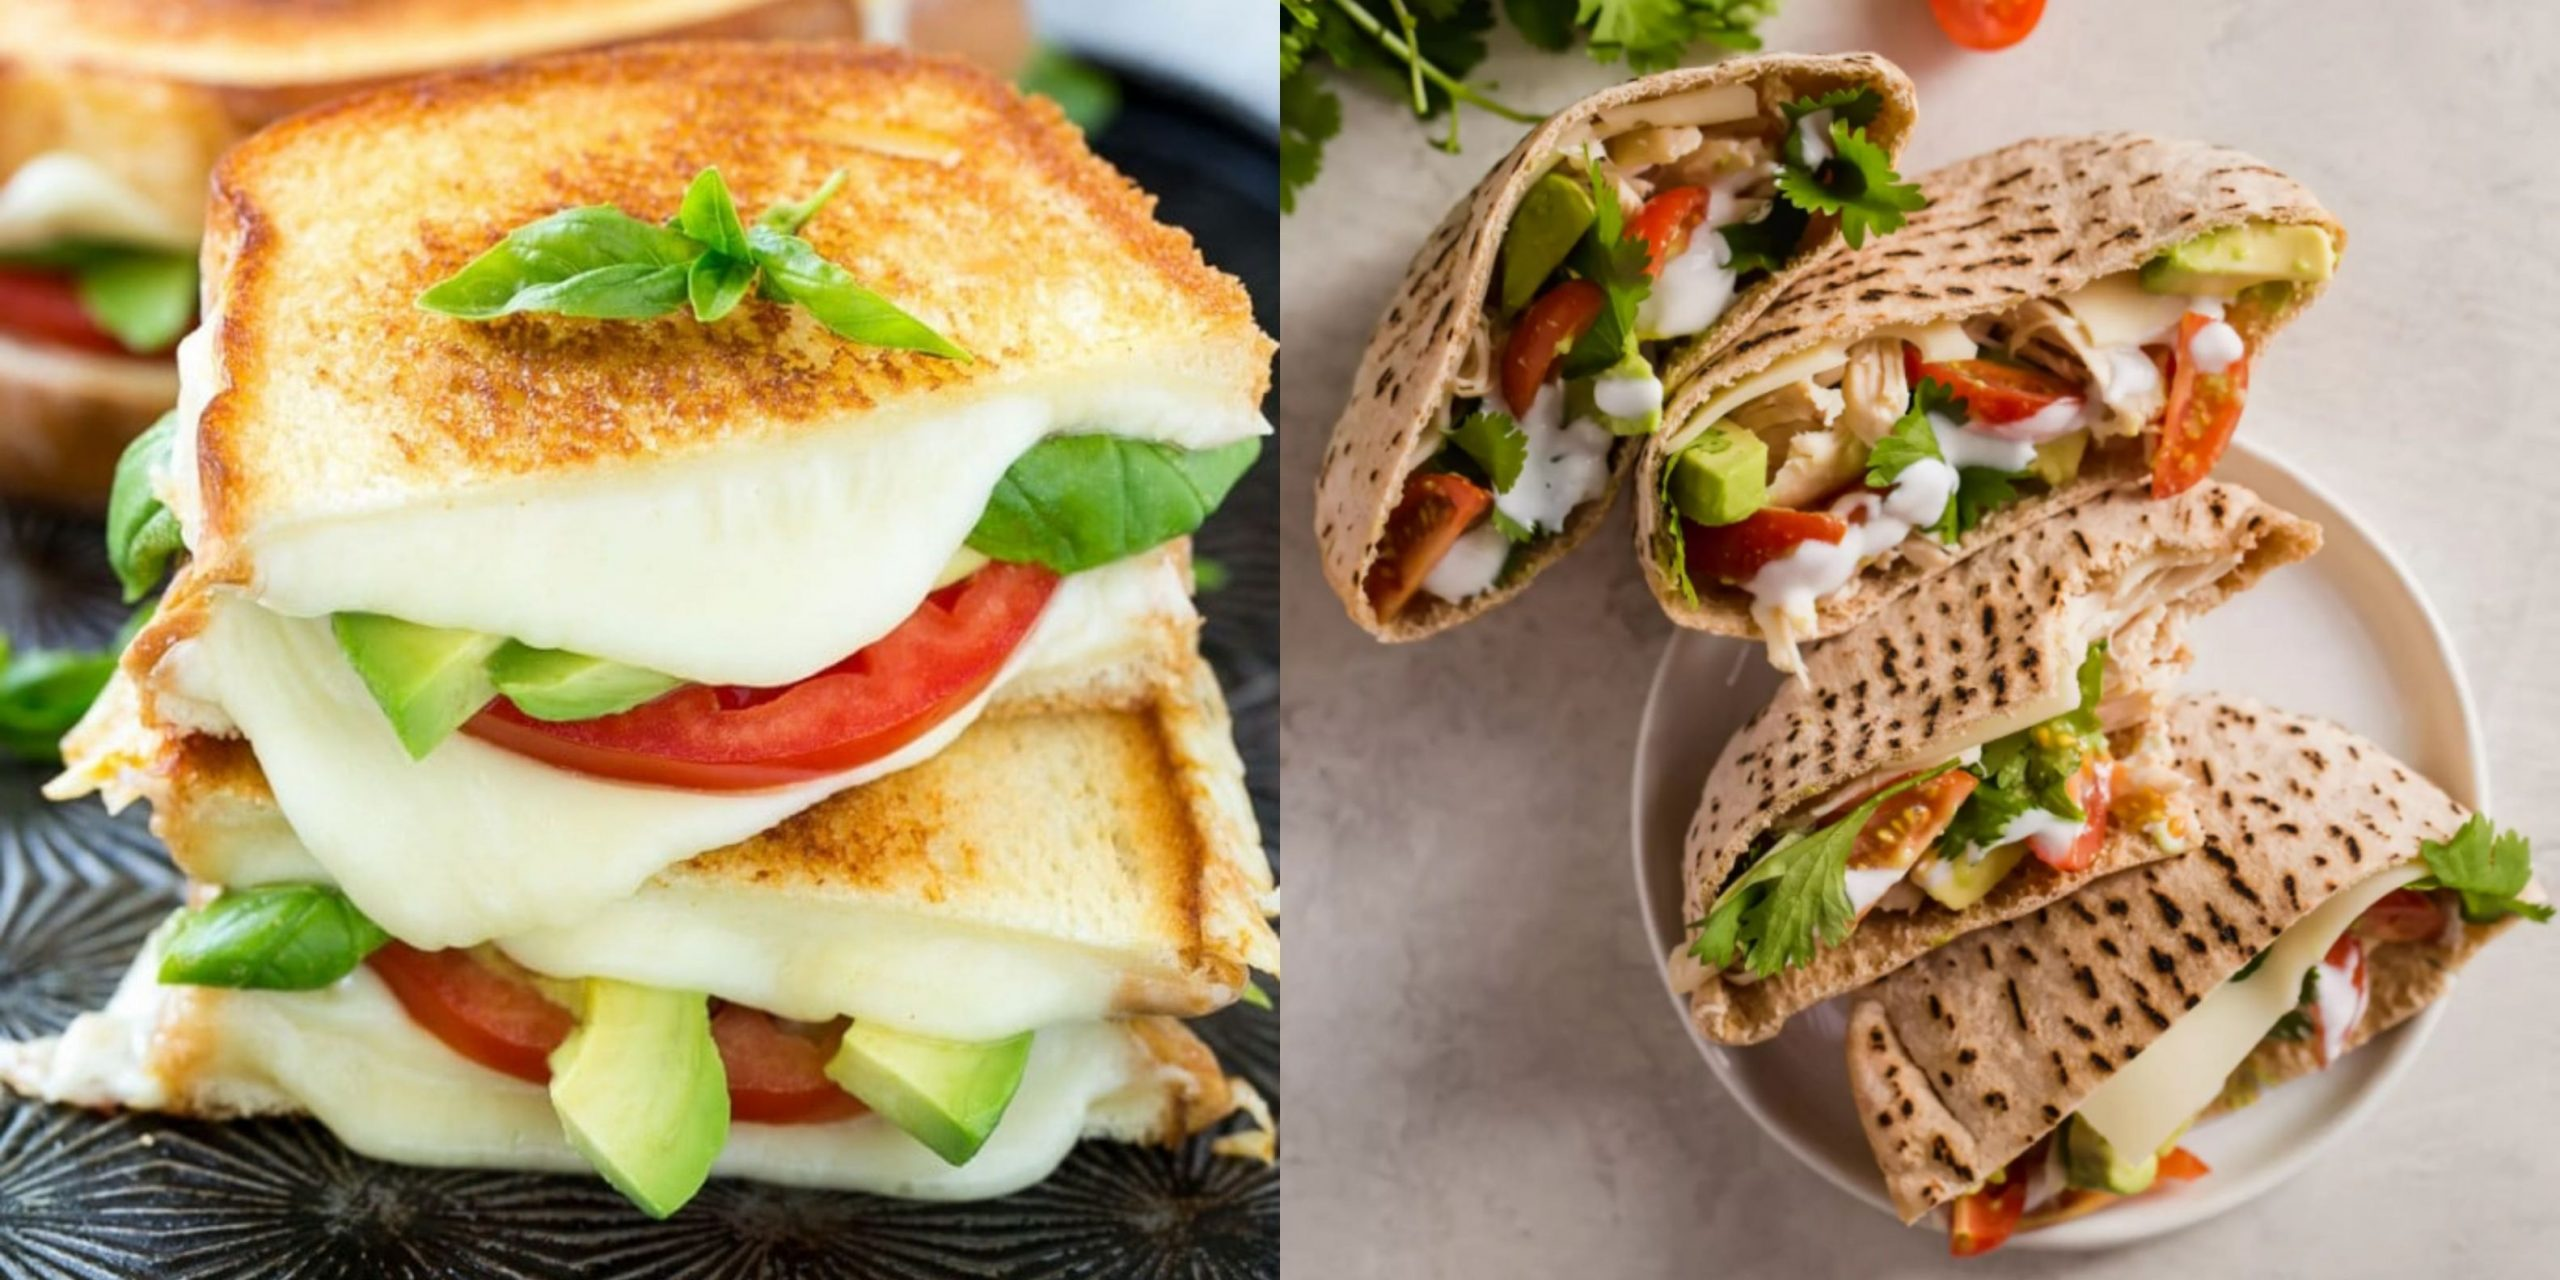 8 Best Sandwich Recipes for Summer - Lunch Sandwich Ideas